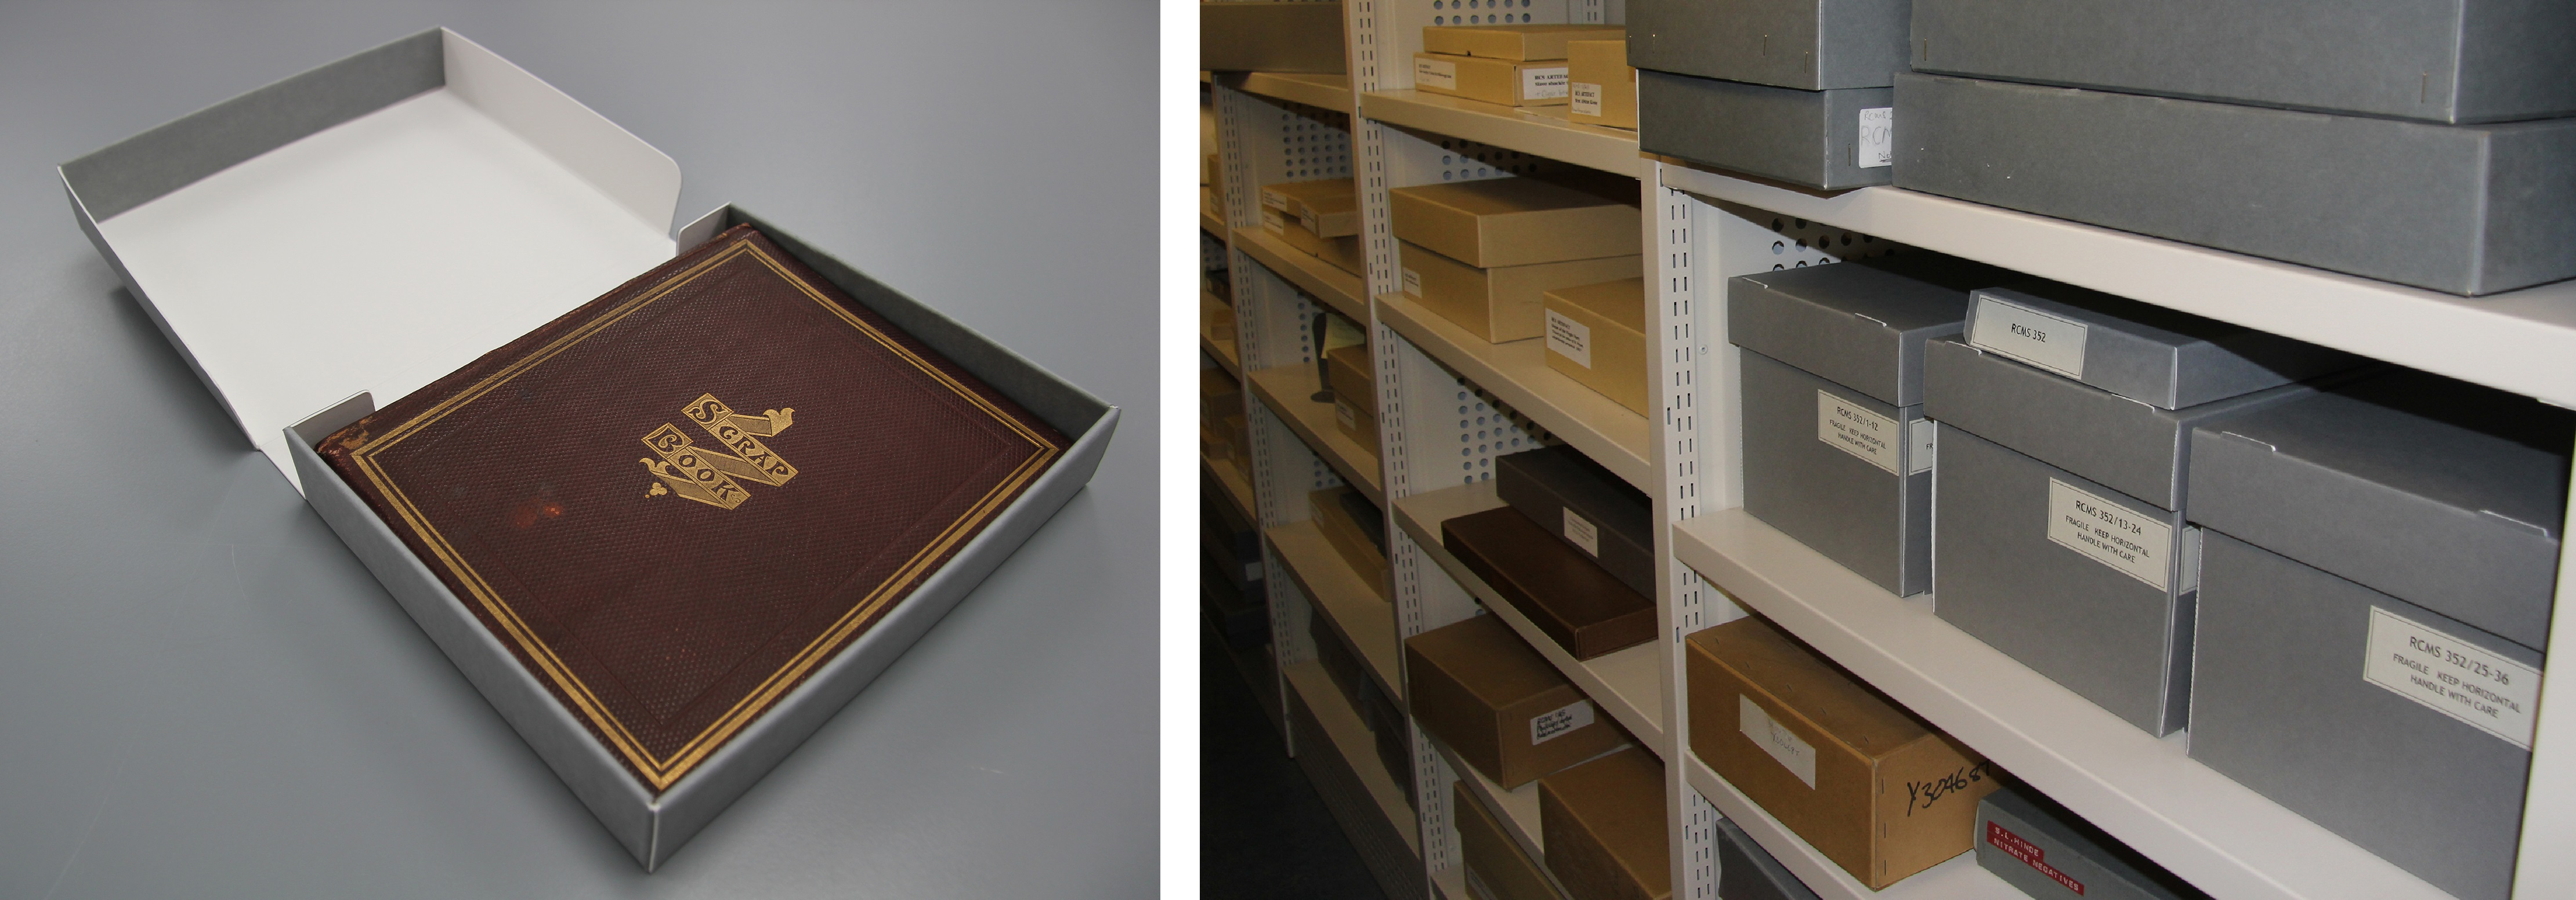 (L) Custom made box containing original album (R) The position of the mica in the stacks